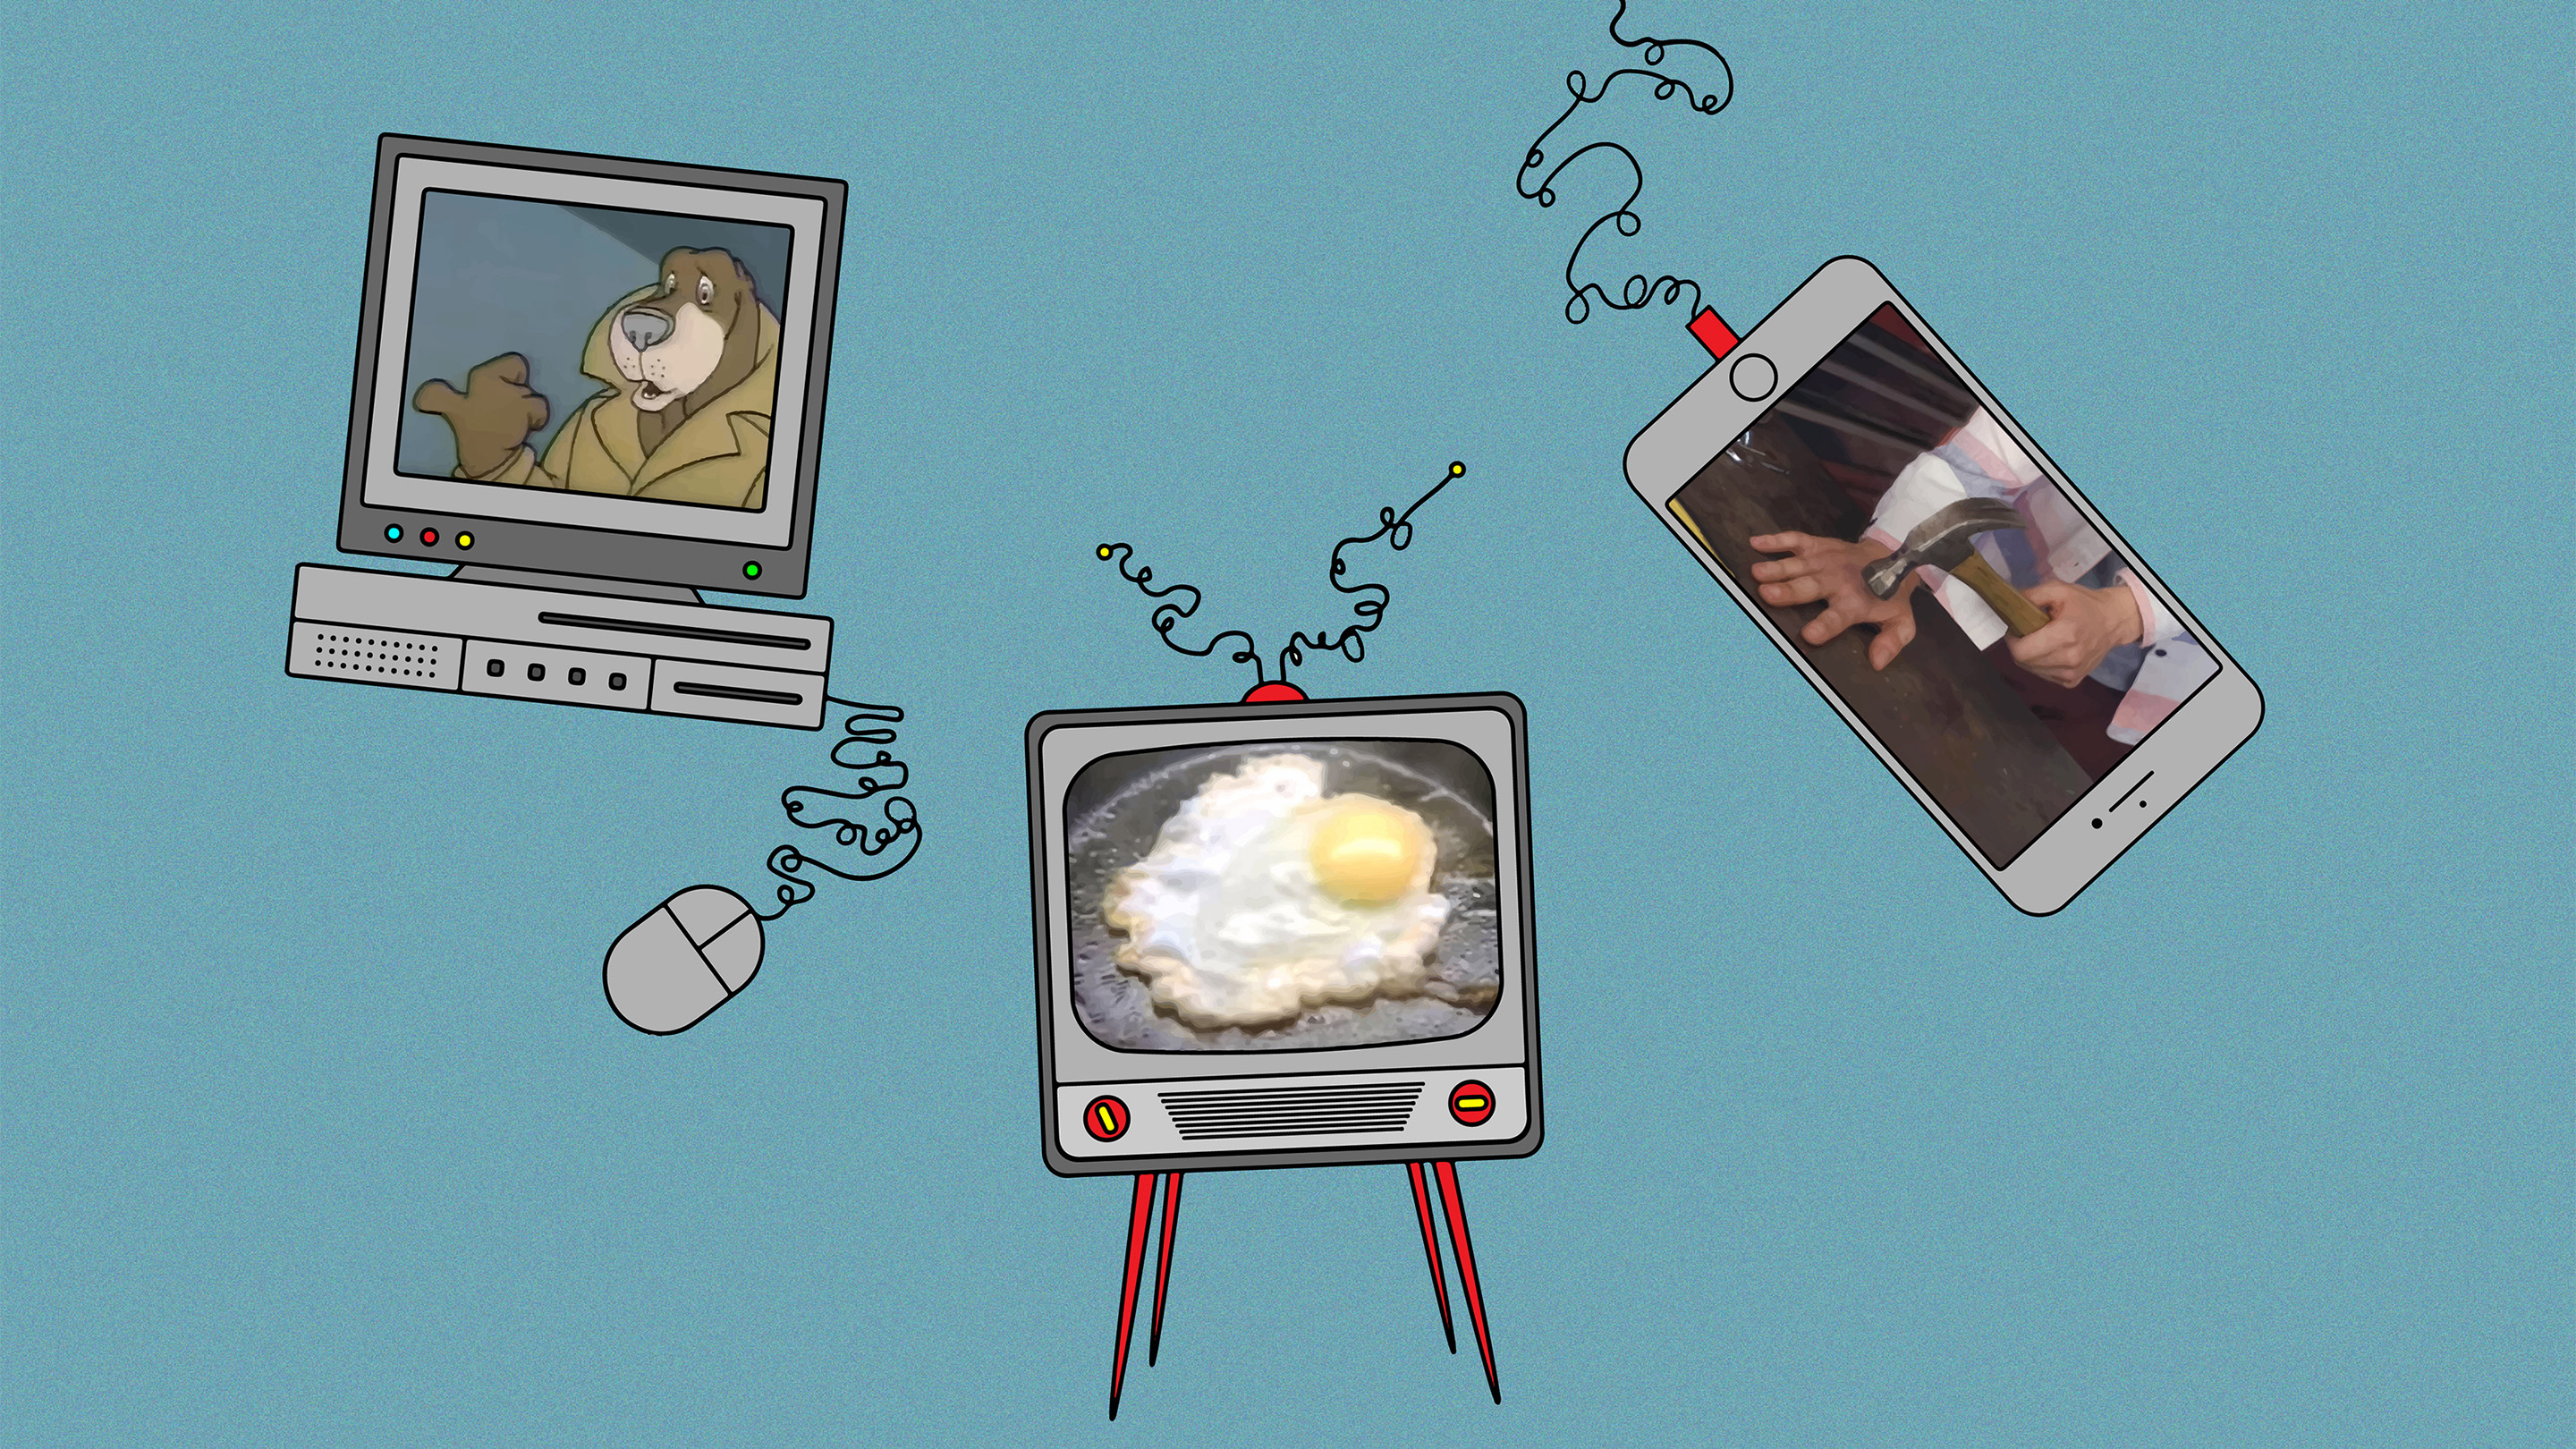 From cringeworthy to scary: a history of anti-drug PSAs - Marketplace